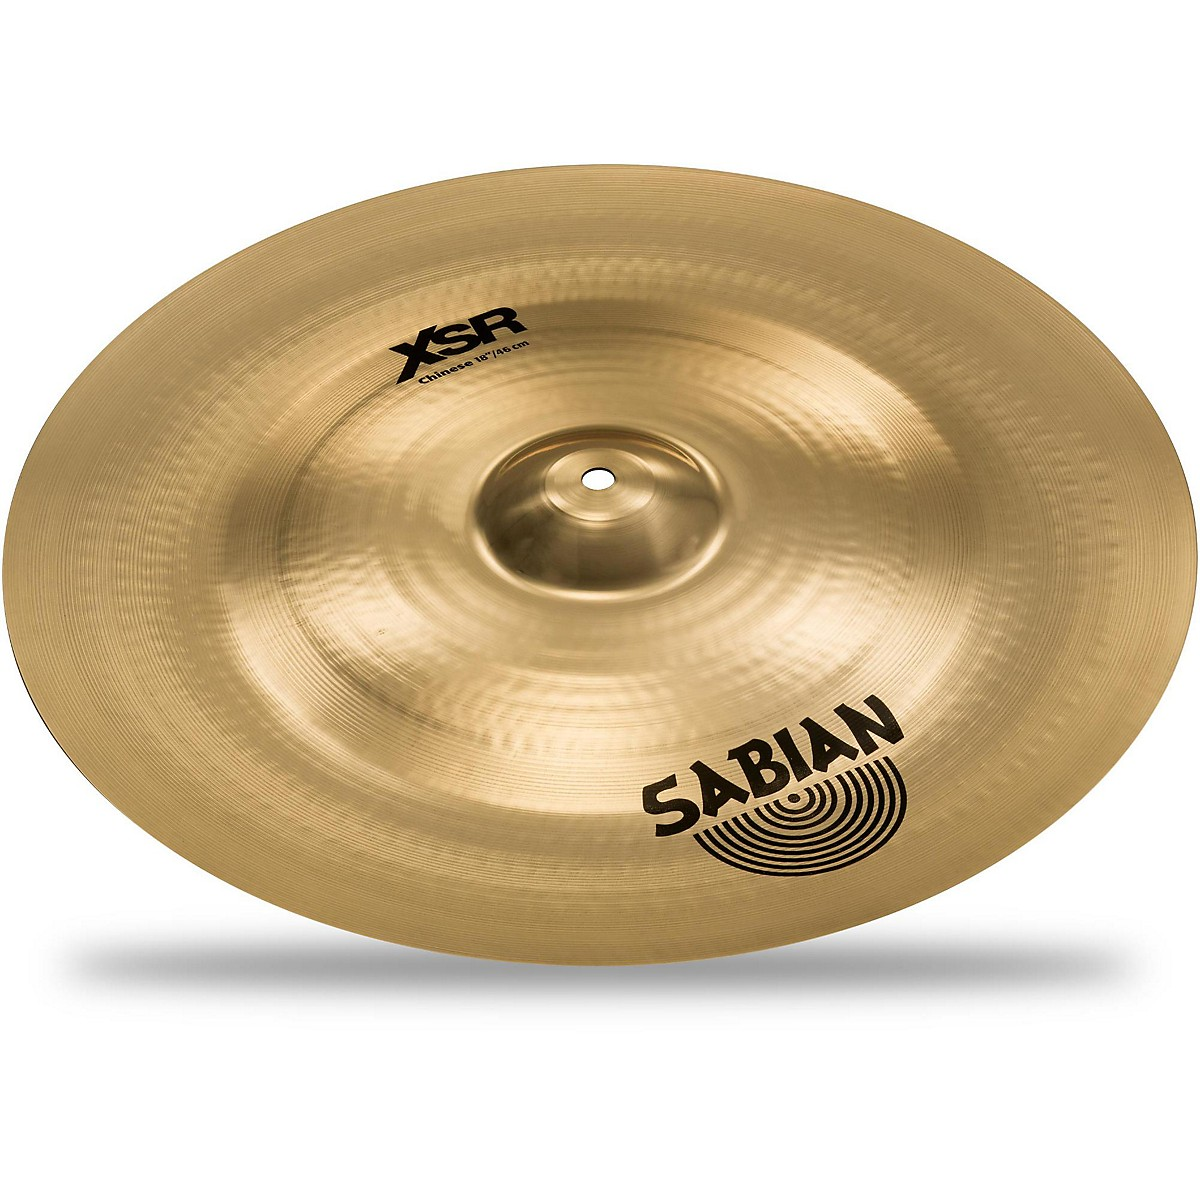 Sabian XSR Series Chinese Cymbal